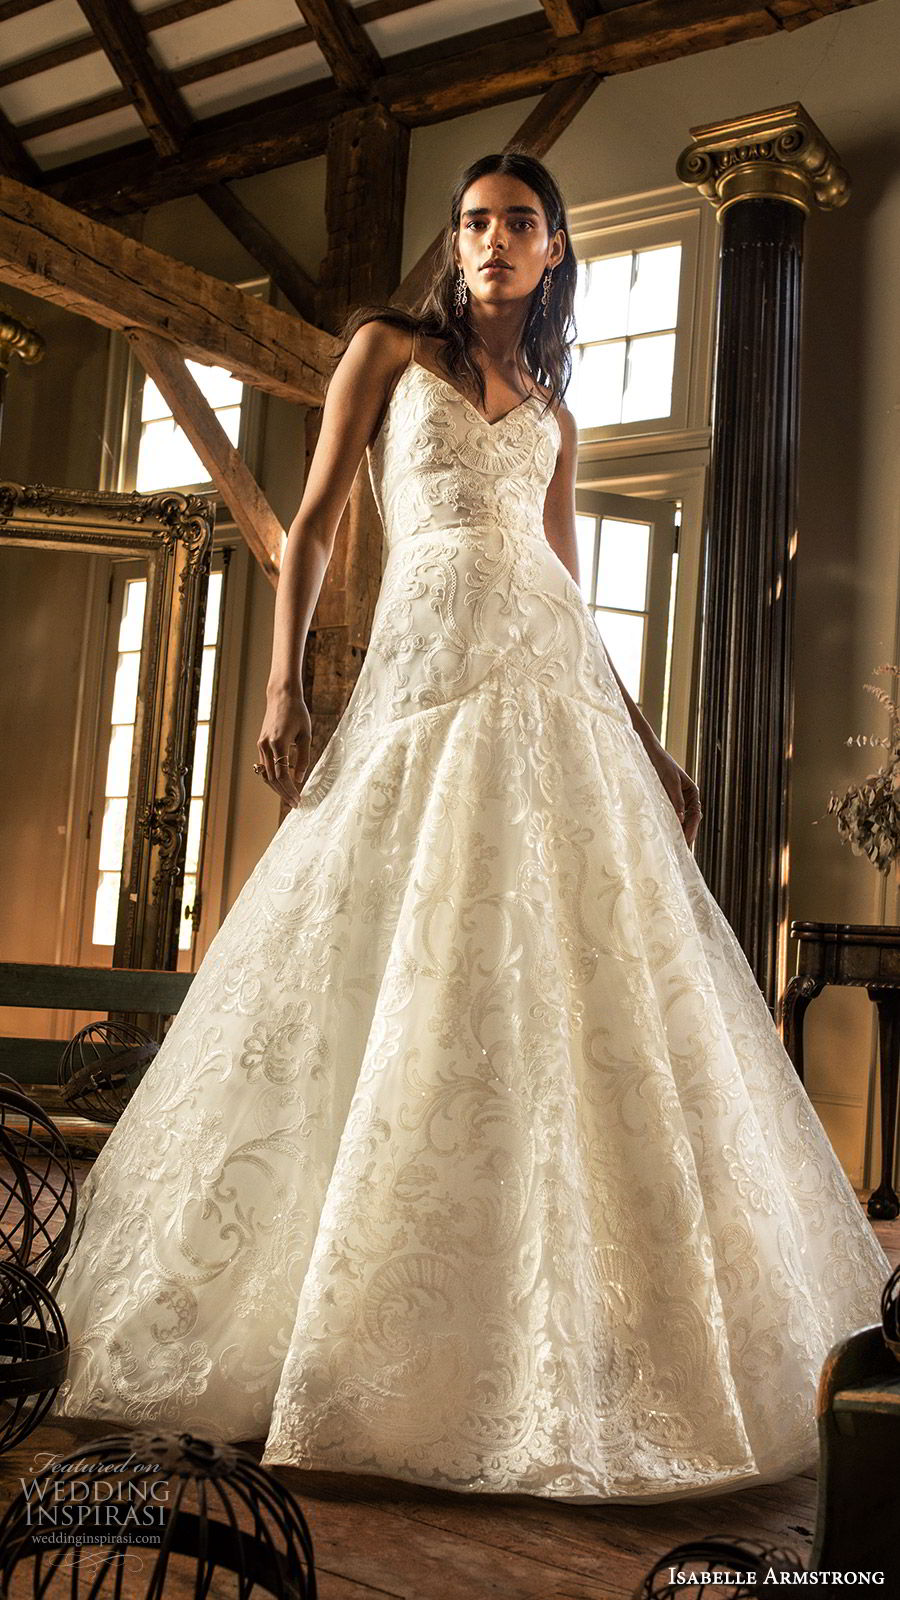 isabelle armstrong fall 2019 bridal sleeveless thin straps vneck embroidered lace a line ball gown wedding dress (13) romantic mv